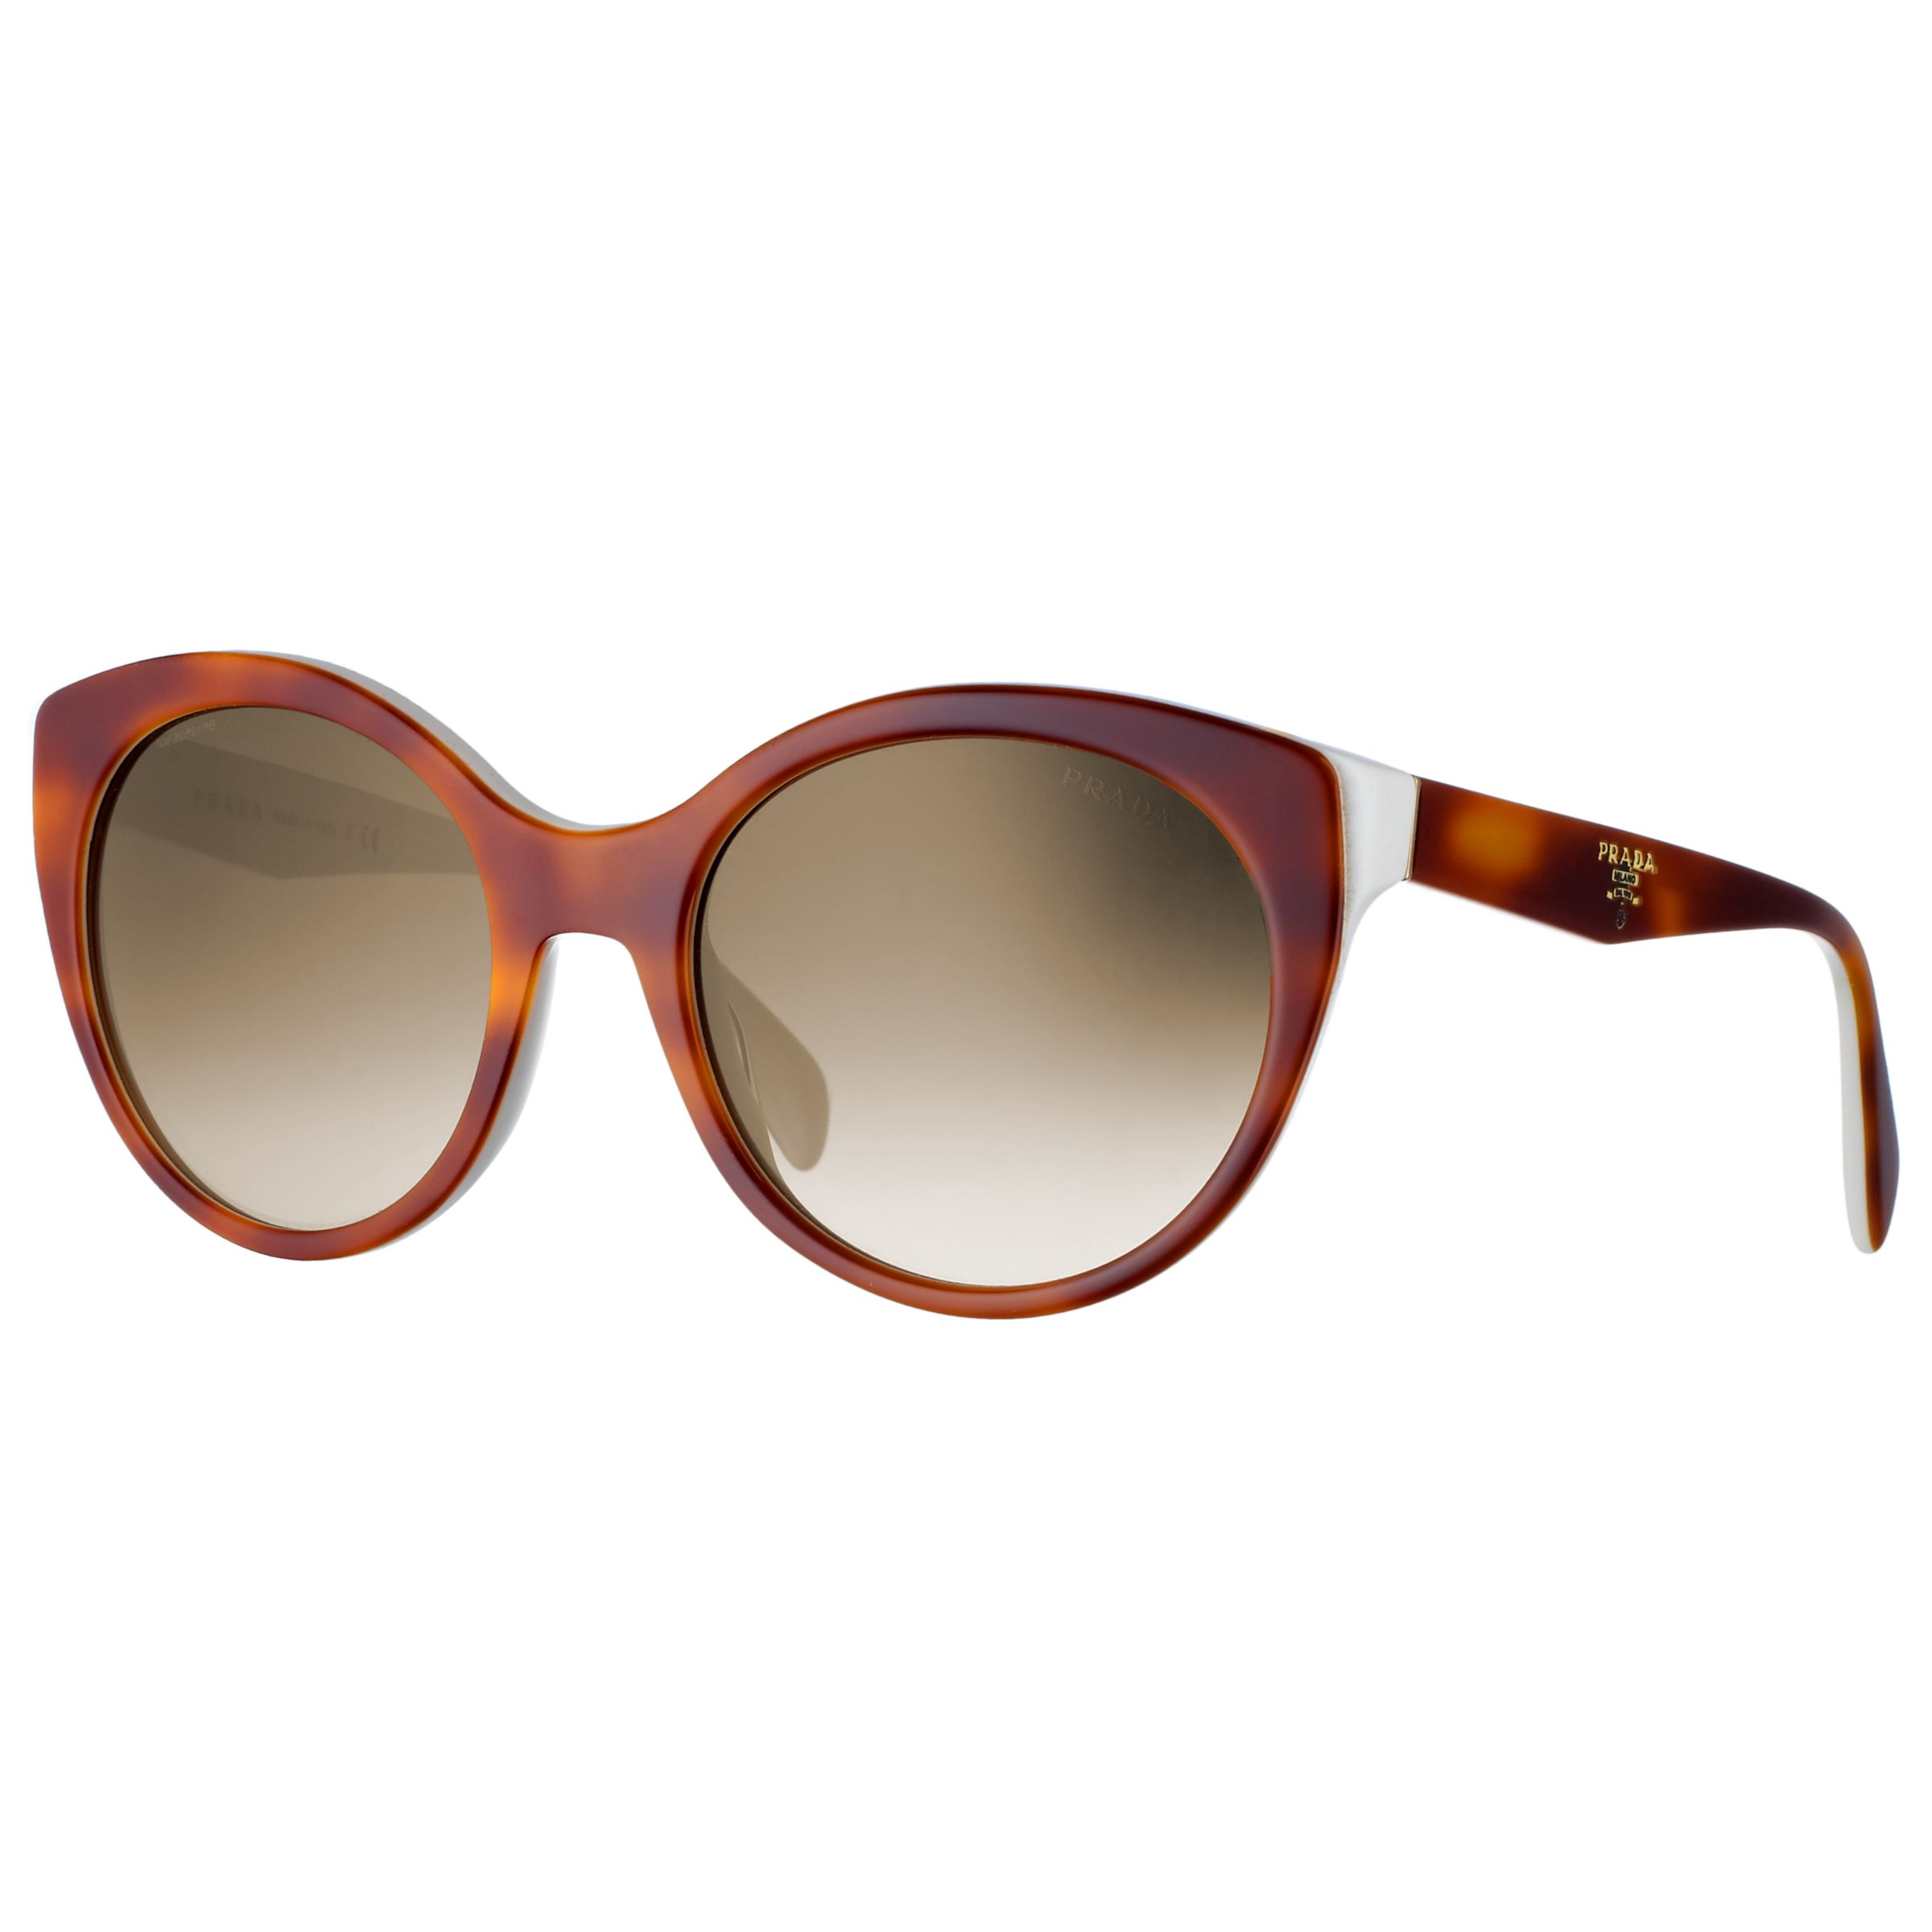 Prada Two Tone Handbag Logo Sunglasses, Light Brown